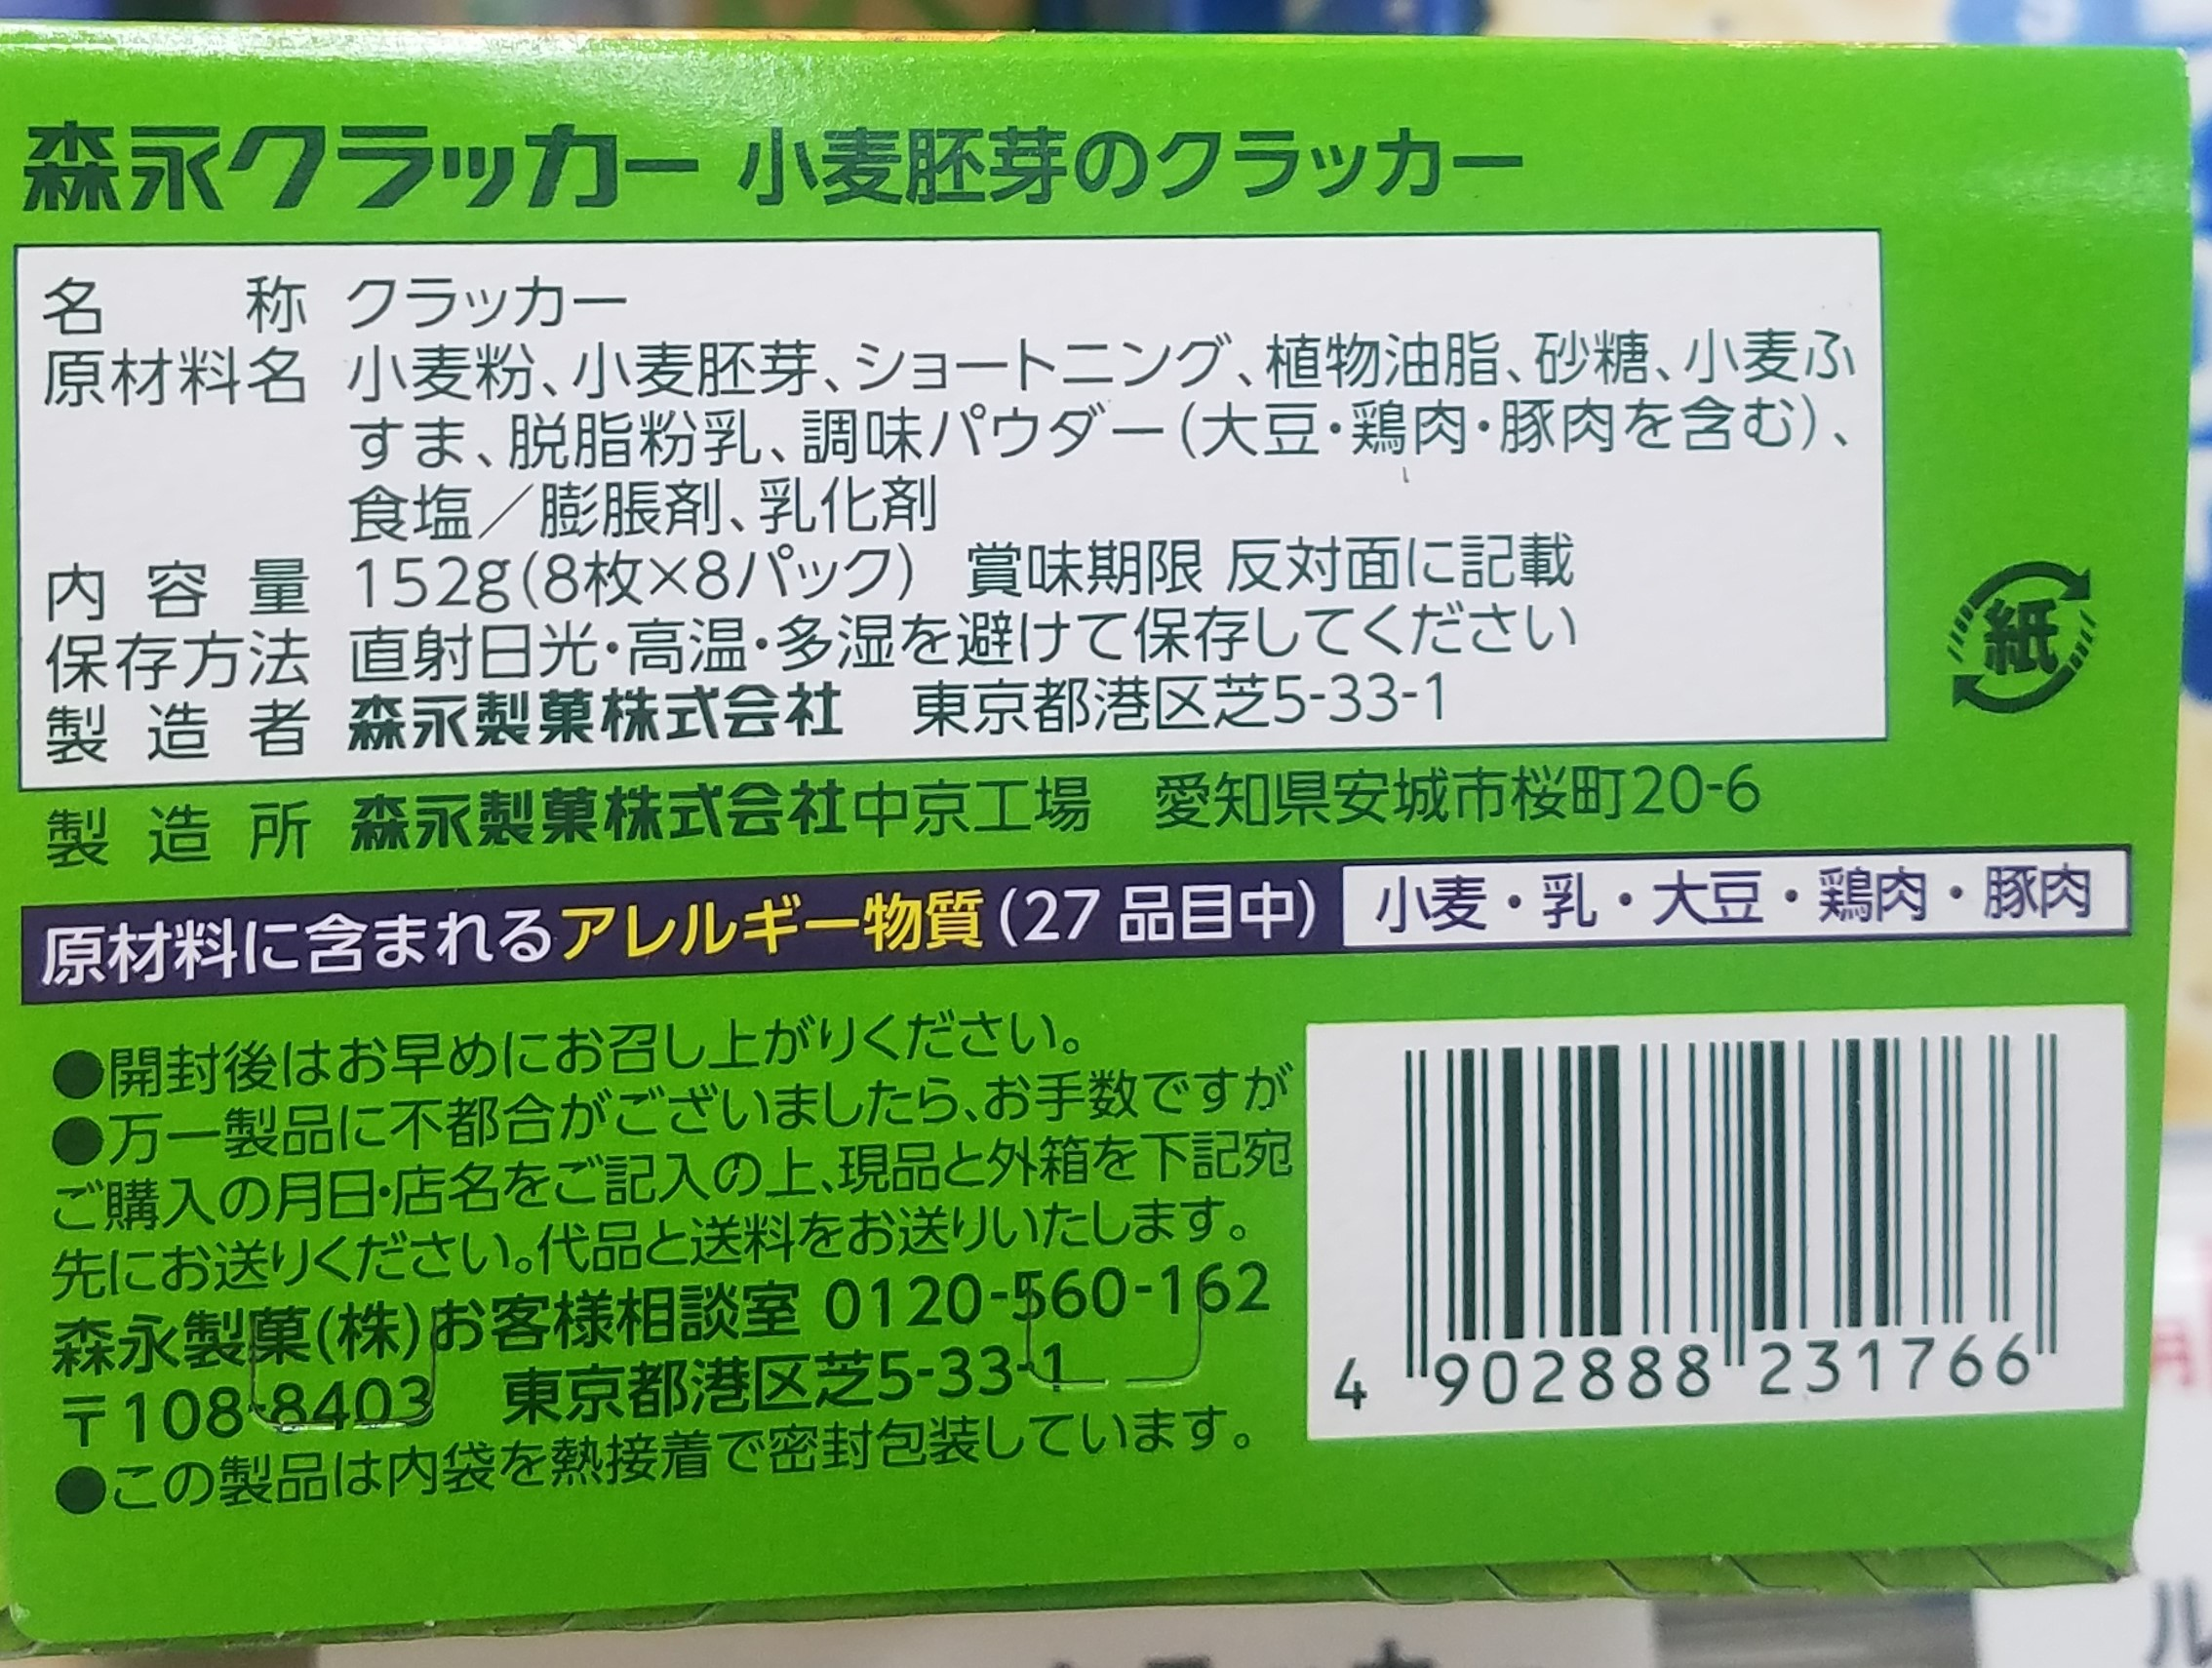 Morinaga Malted Wheat Crackers森永小麦麦芽のクラッカー back of package